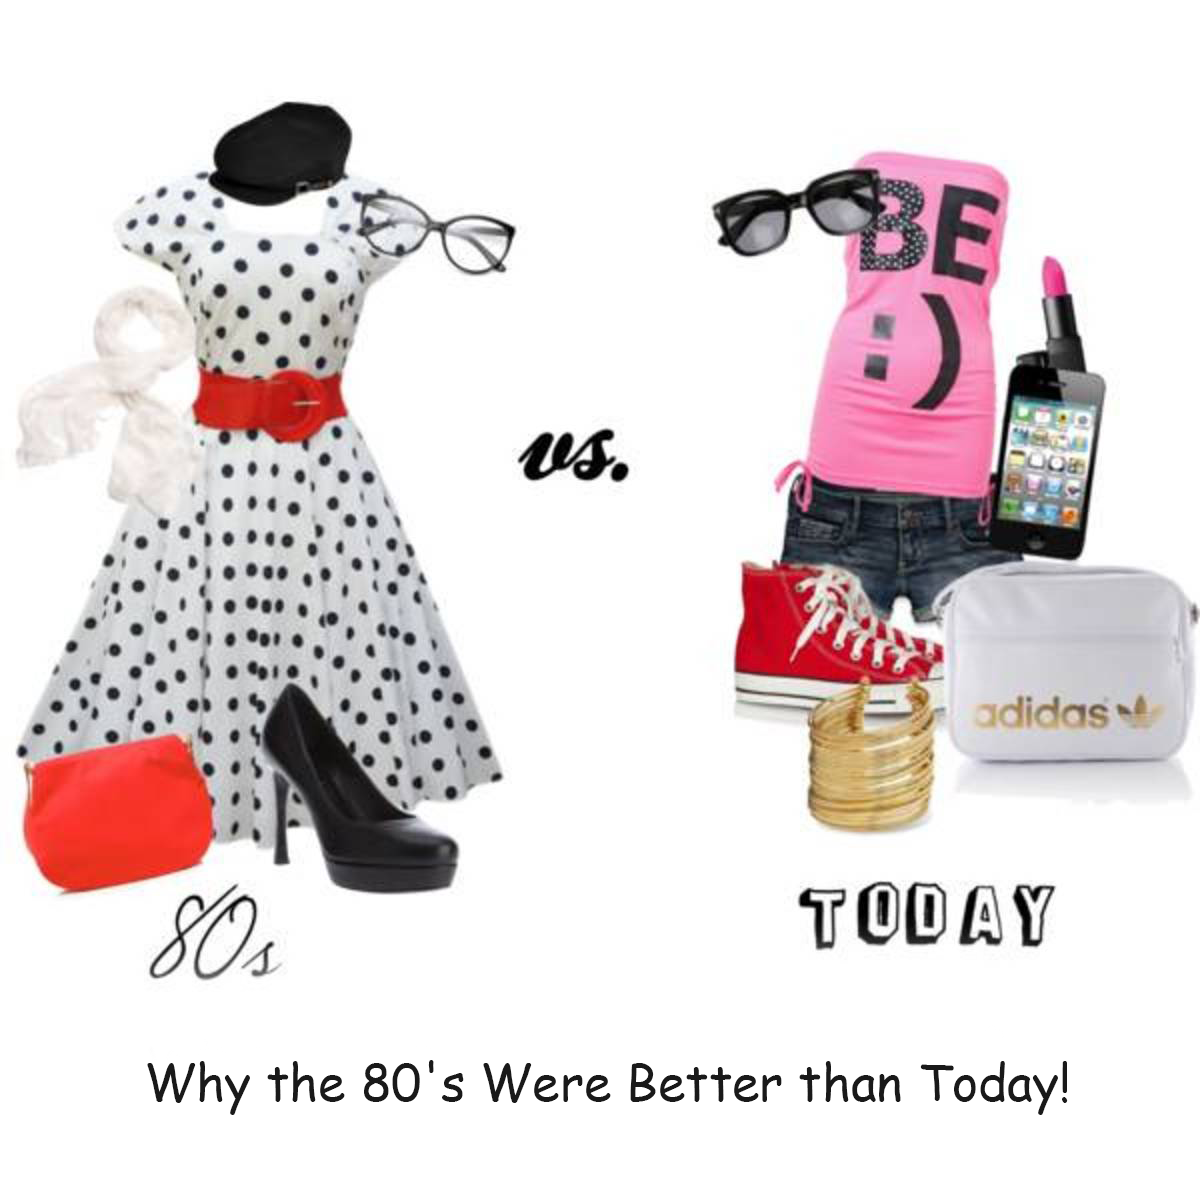 httphubpagescomhubwhat-made-the-80s-so-great-better-than-today